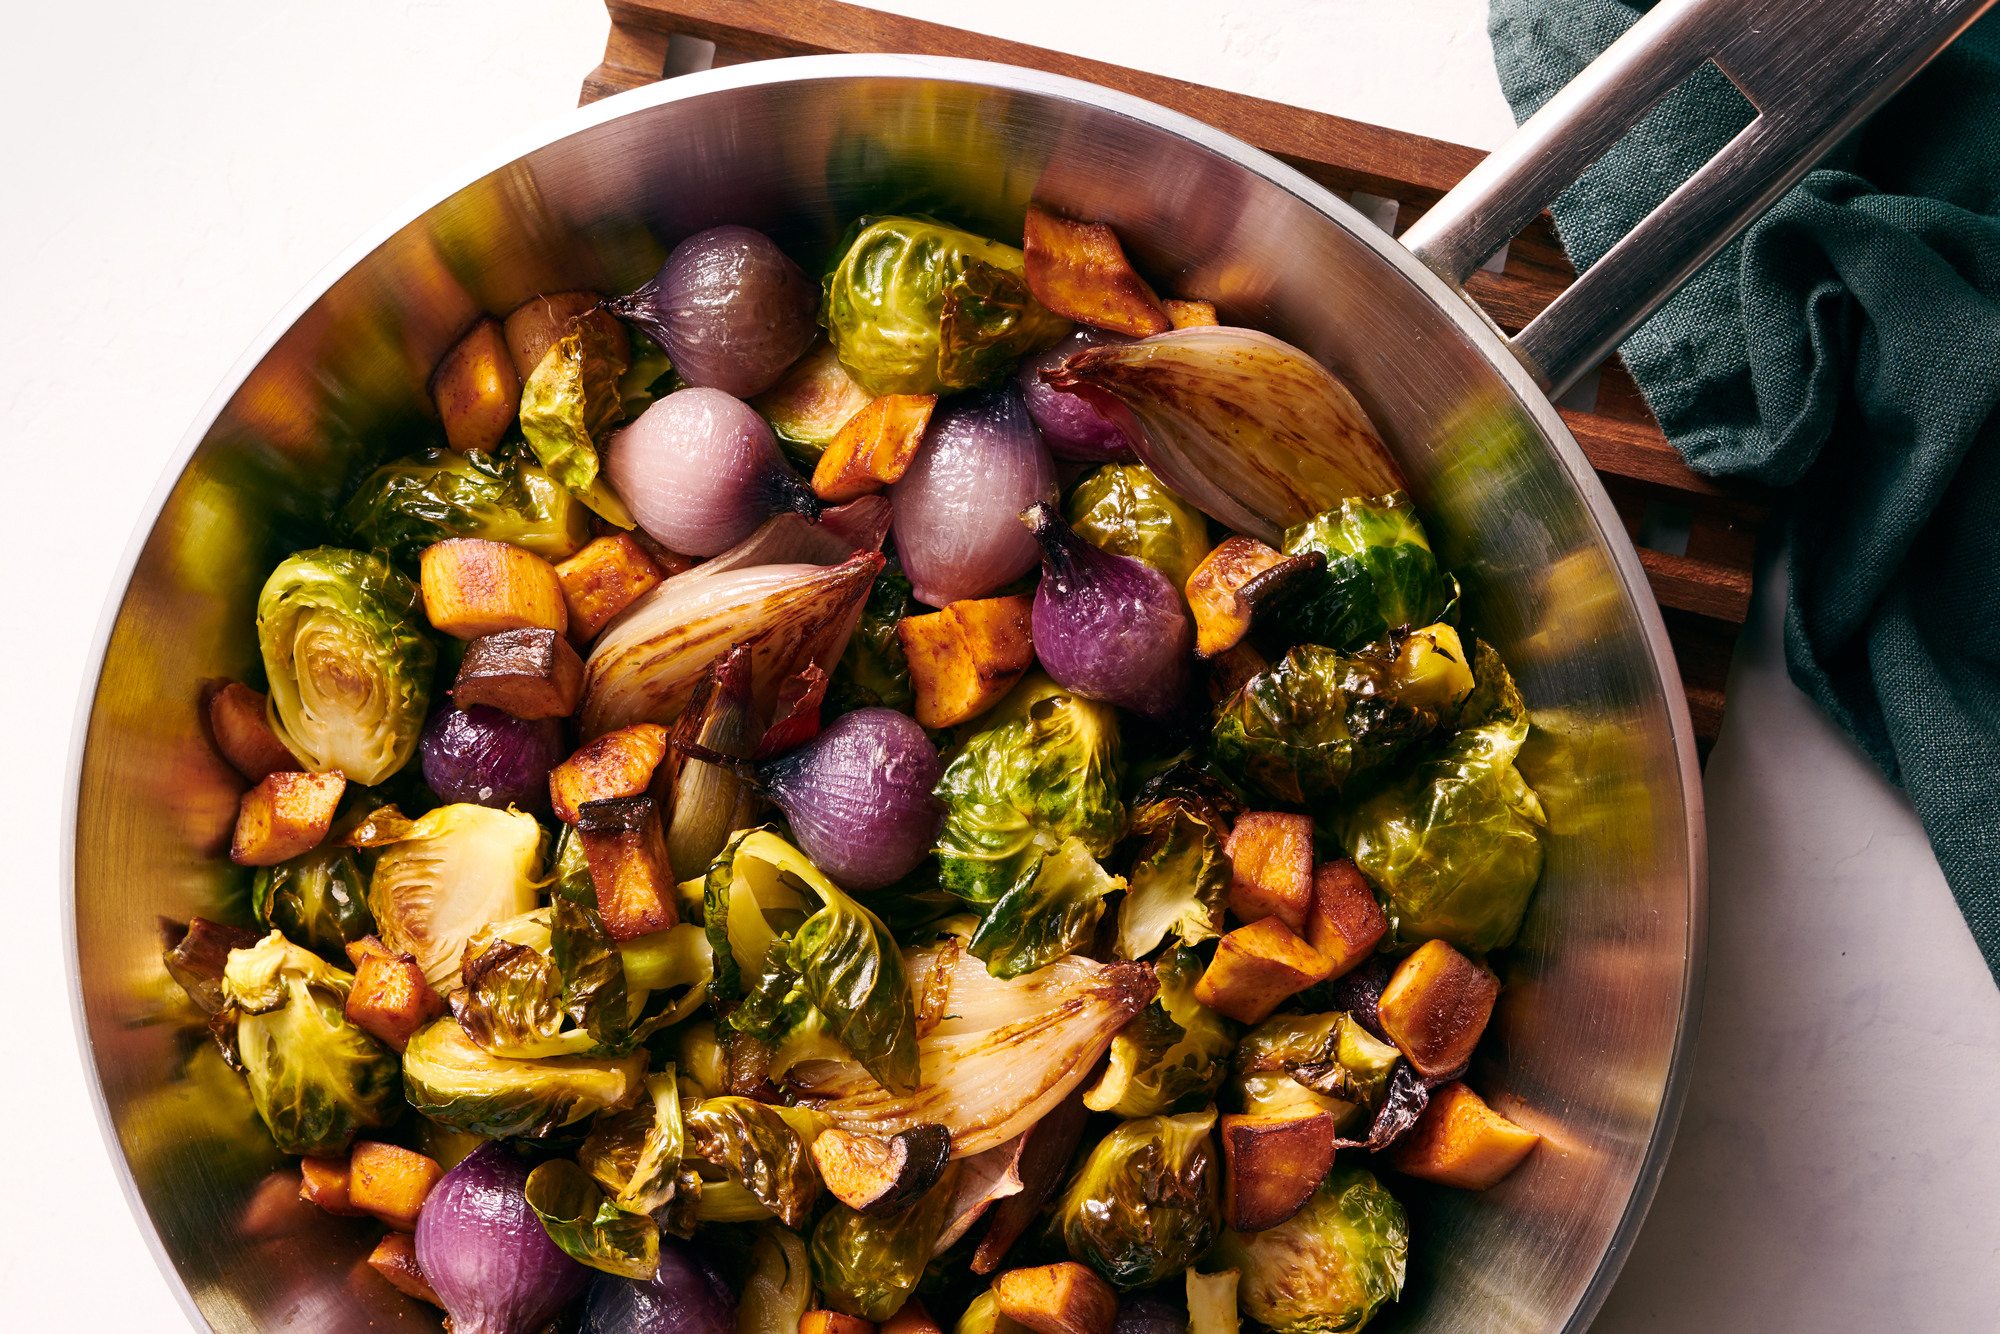 Brussels sprouts with onions and mushroom lardons